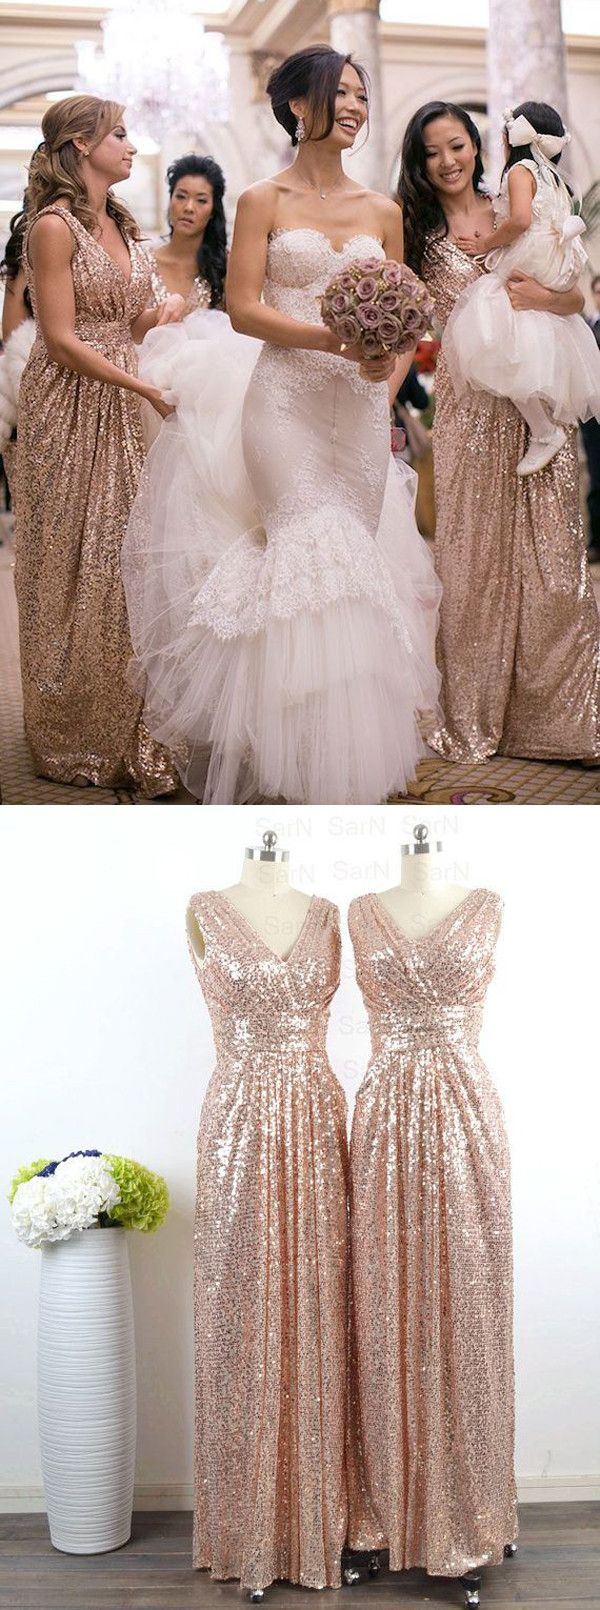 Long bridesmaid dress sparkly rose gold sequins bridesmaid dress long bridesmaid dress sparkly rose gold sequins bridesmaid dress wedding party dress ombrellifo Gallery